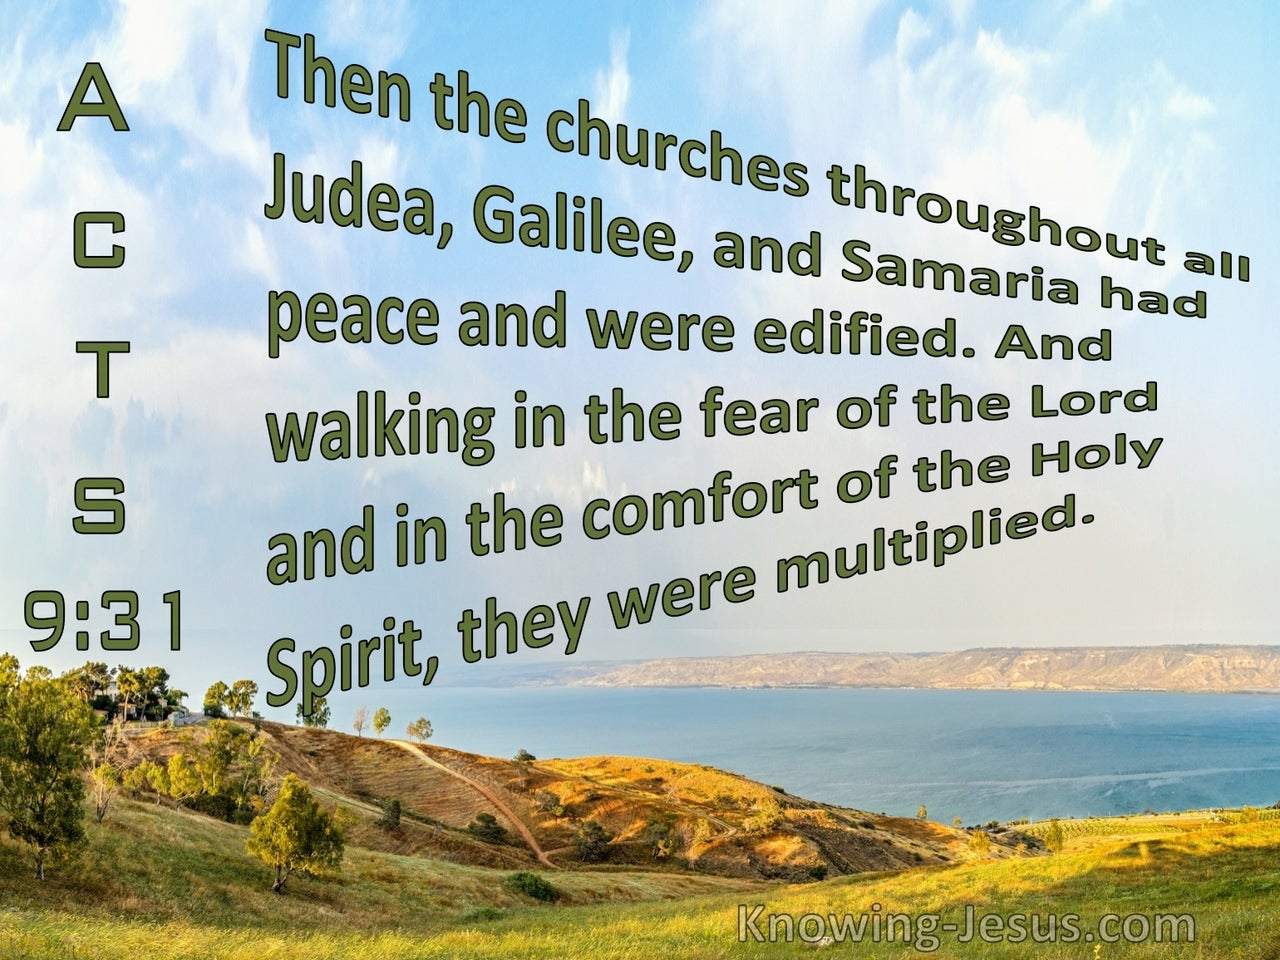 Acts 9:31 The Churches In Judea, Galilee, And Samaria Had Peace And Were Edified (green)